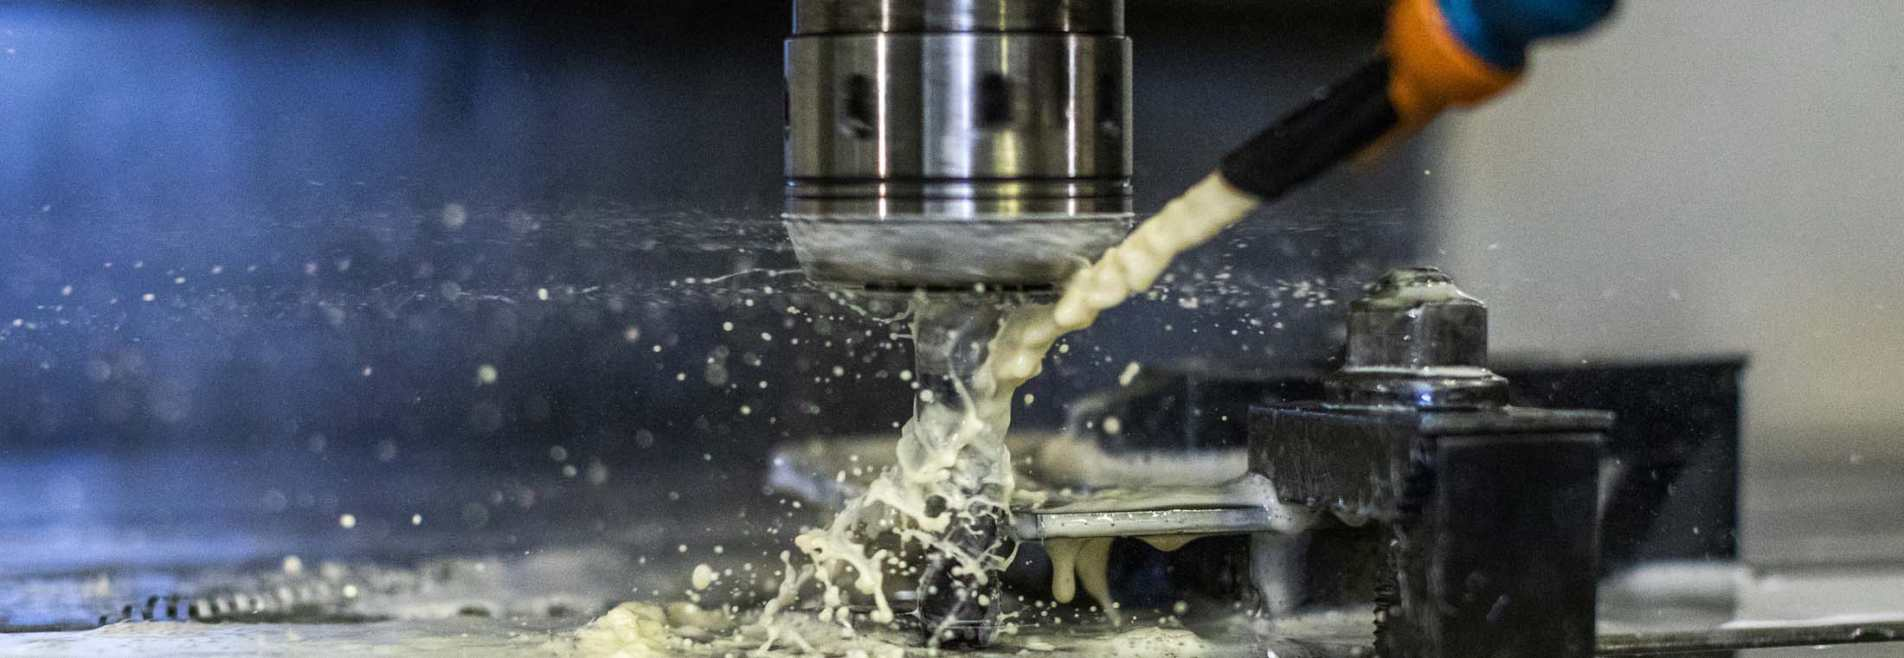 CNC Machining Perth